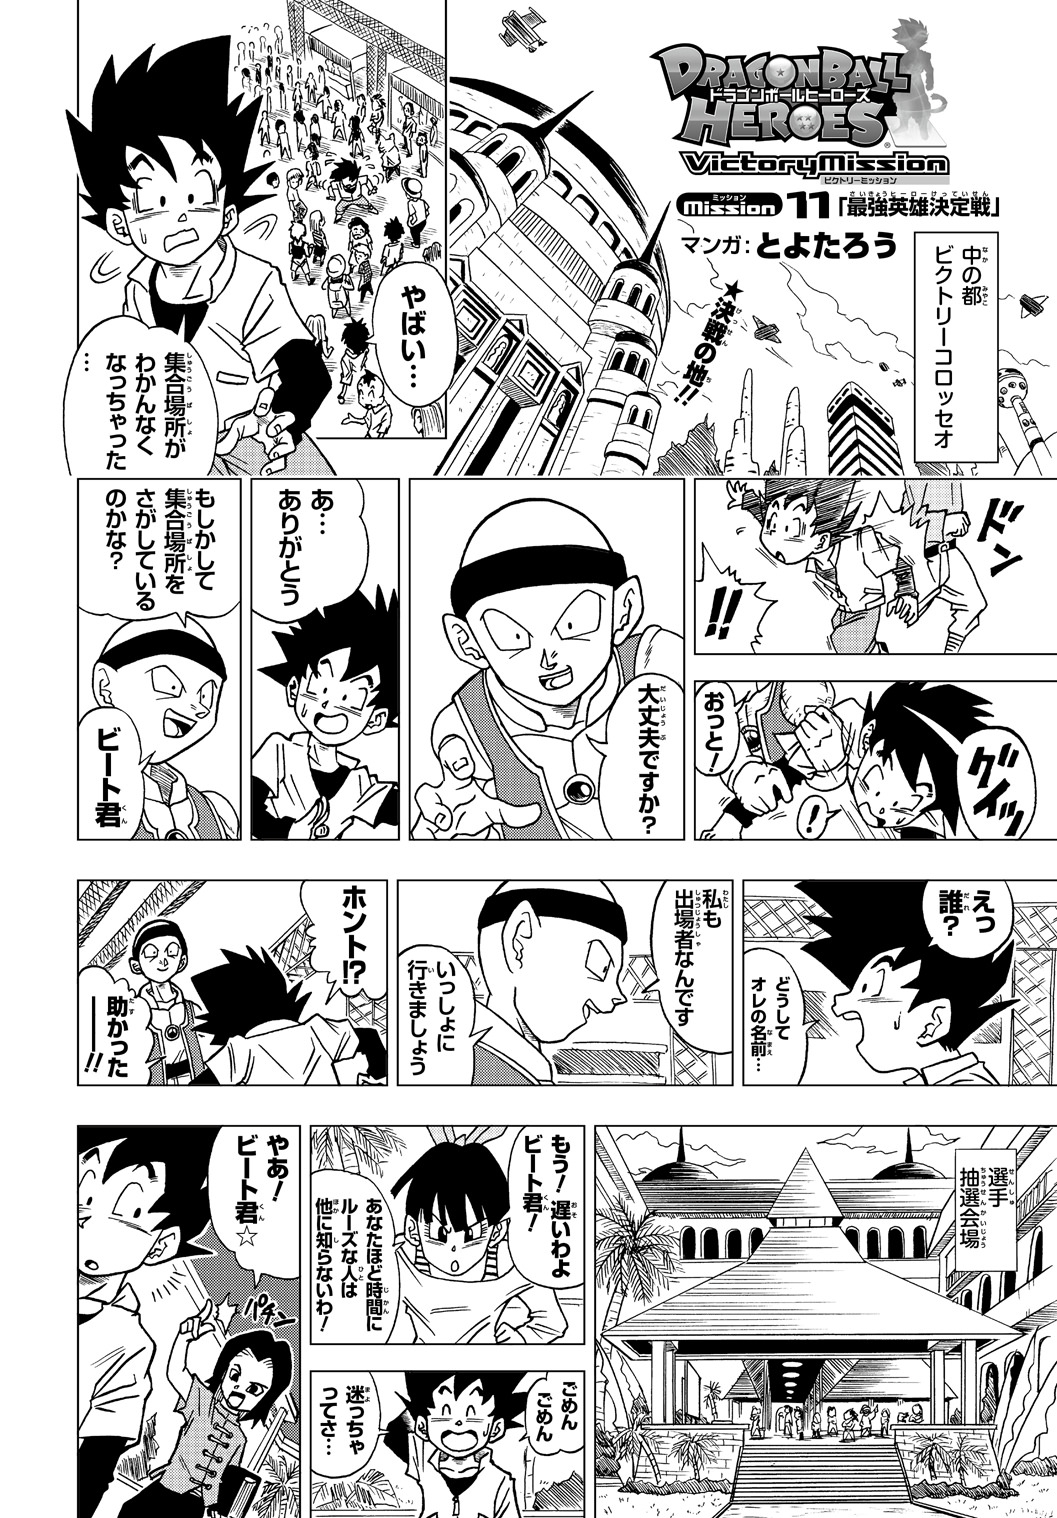 Dragon Ball Heroes Victory Mission Chapitre 011